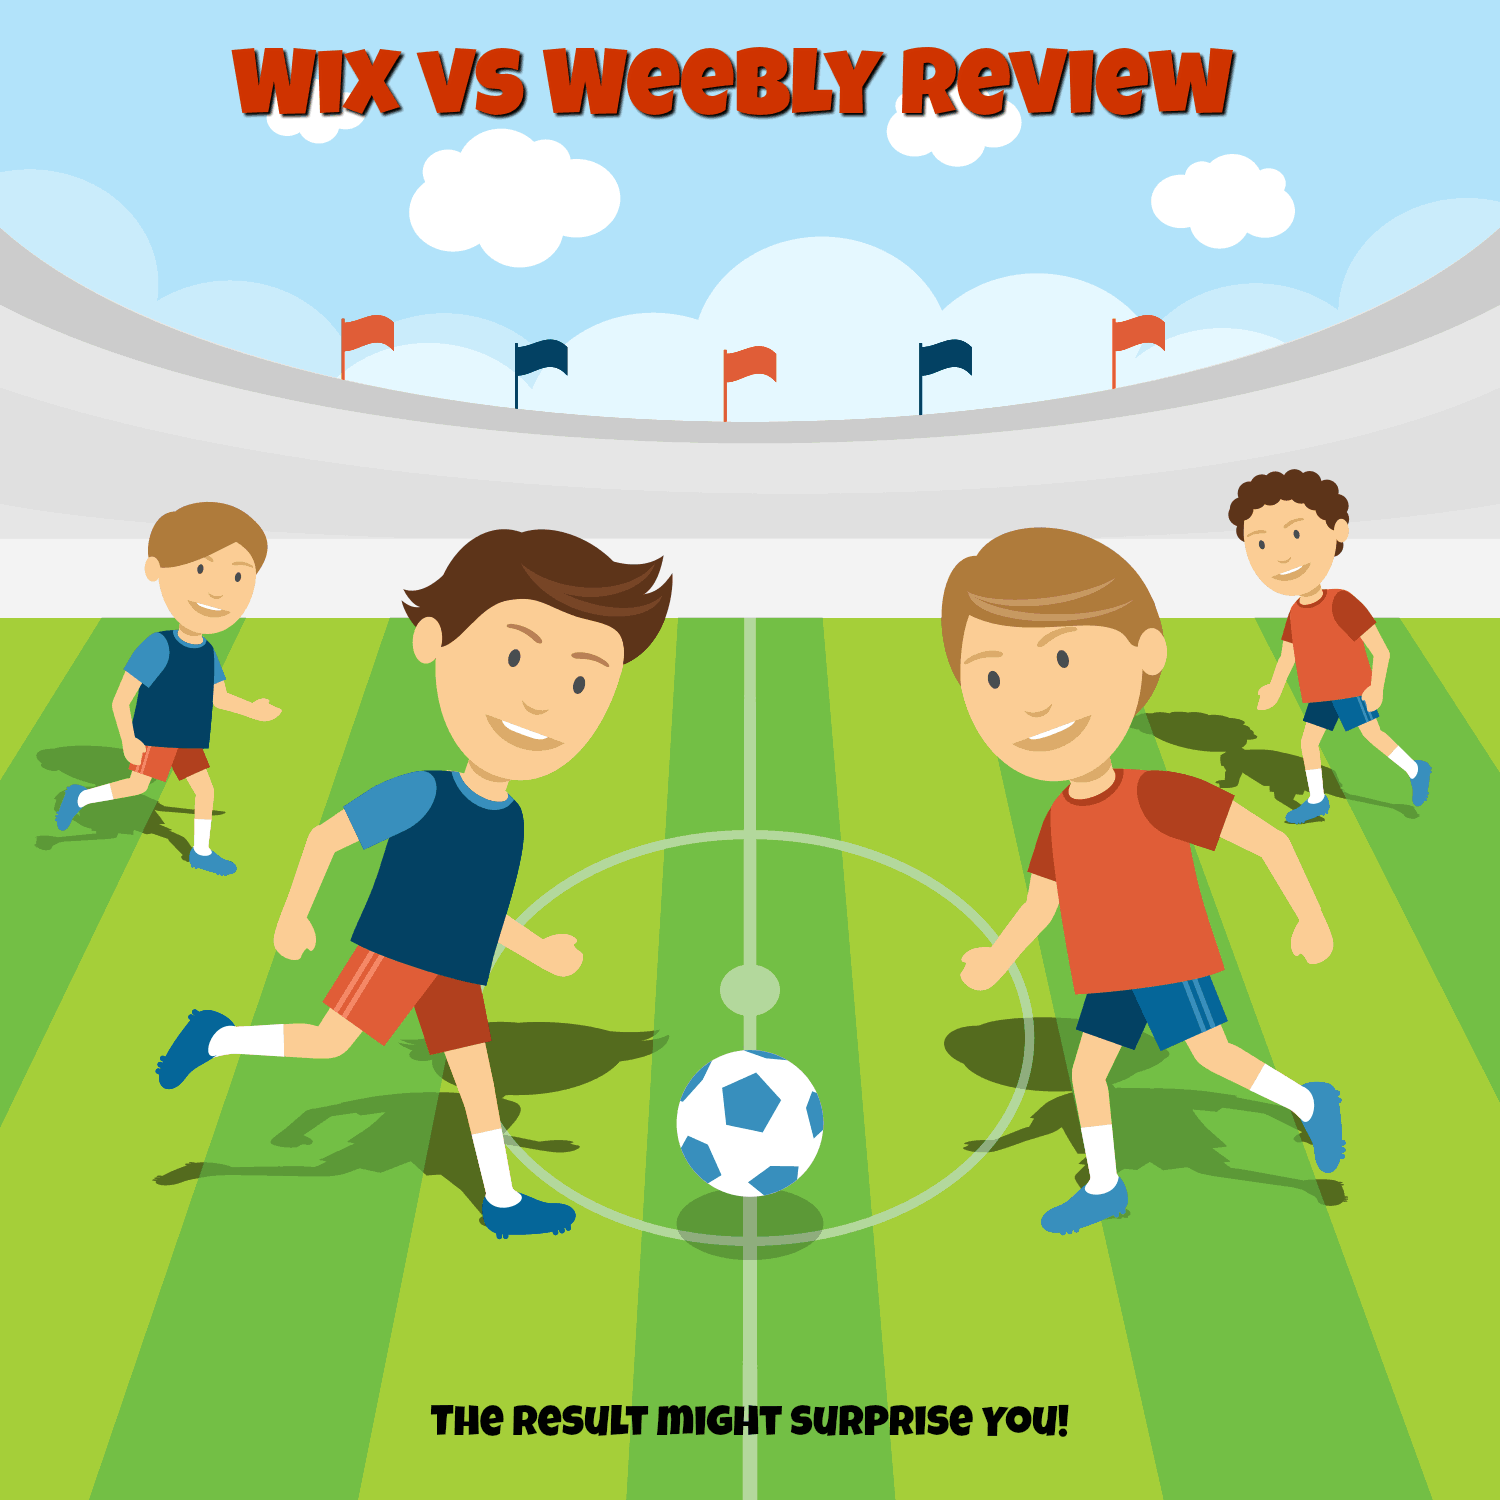 Wix vs Weebly Review